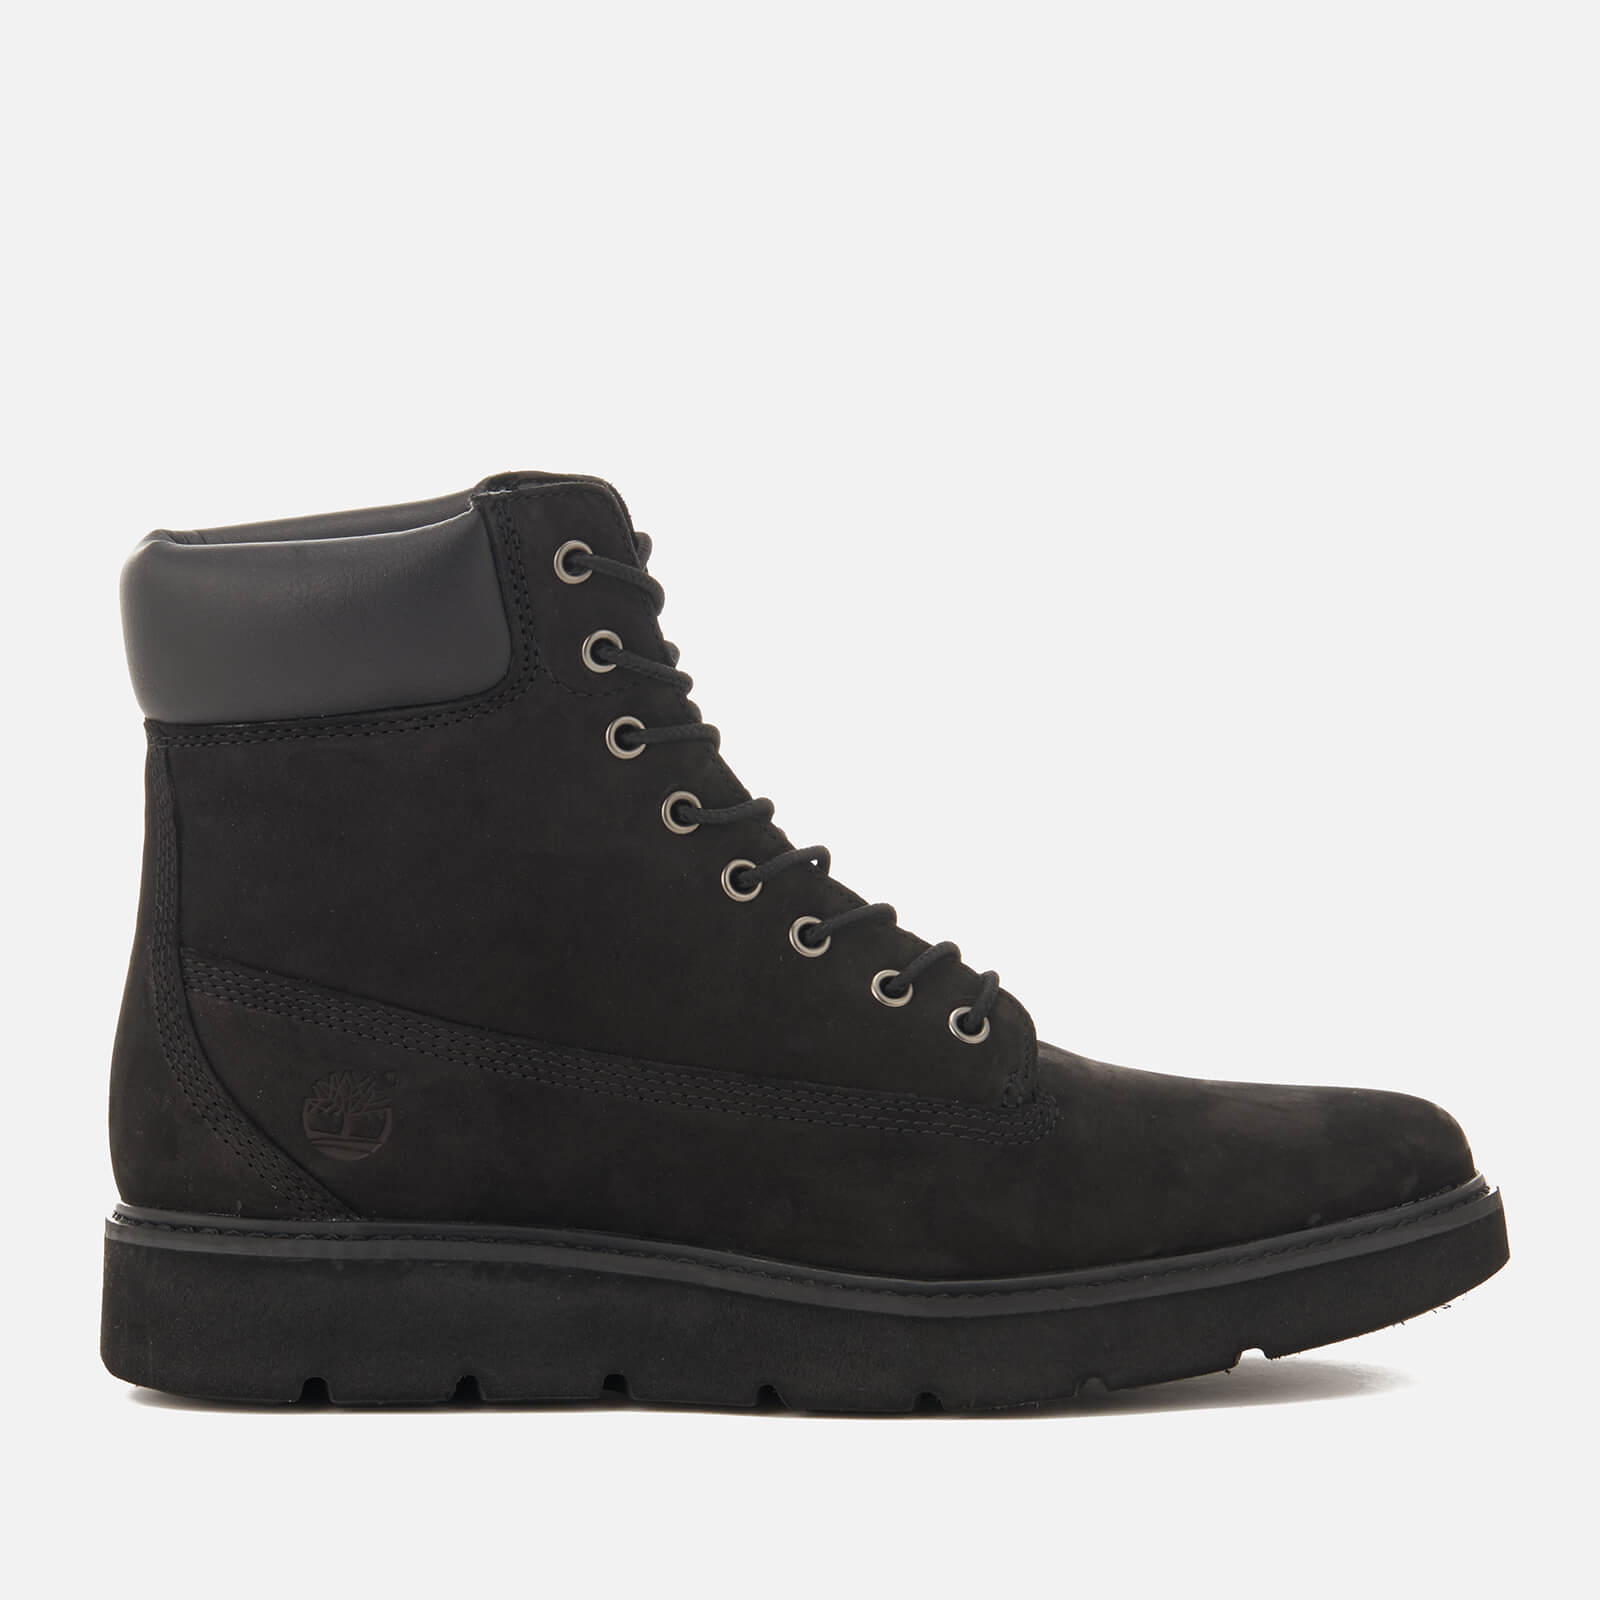 Timberland Women's Kenniston 6 Inch Leather Lace Up Boots Black